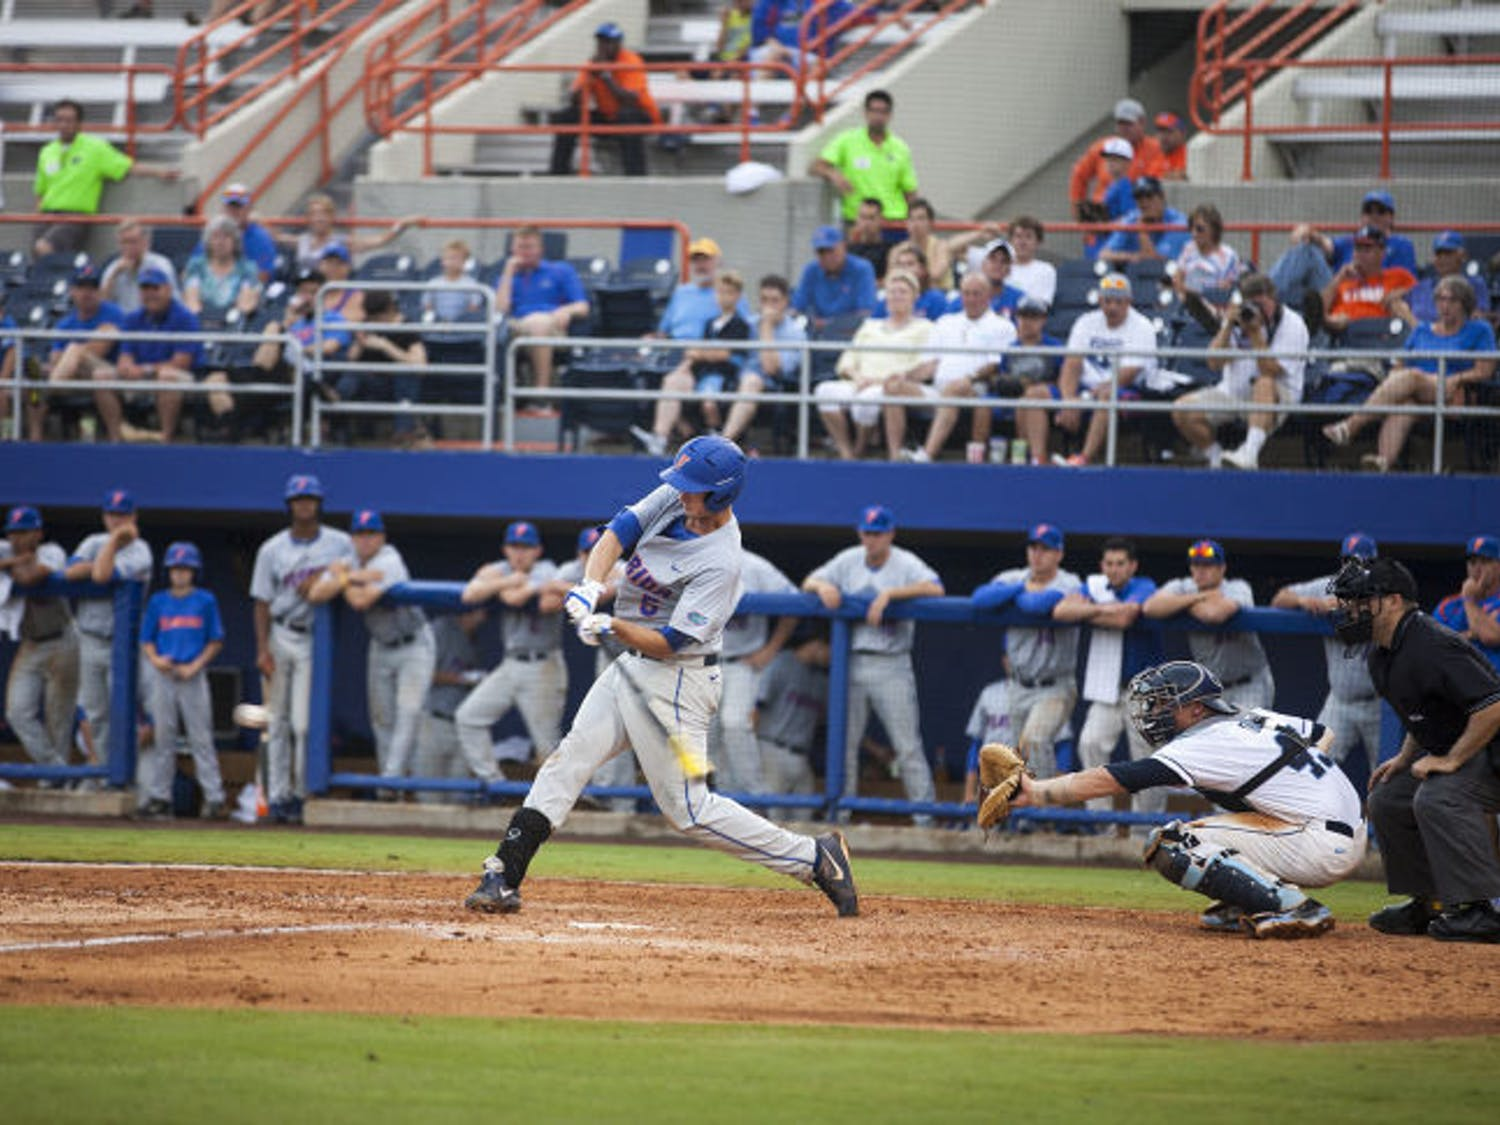 Zack Powers swings at a pitch during Florida's 5-2 loss to North Carolina on Saturday in McKethan Stadium.